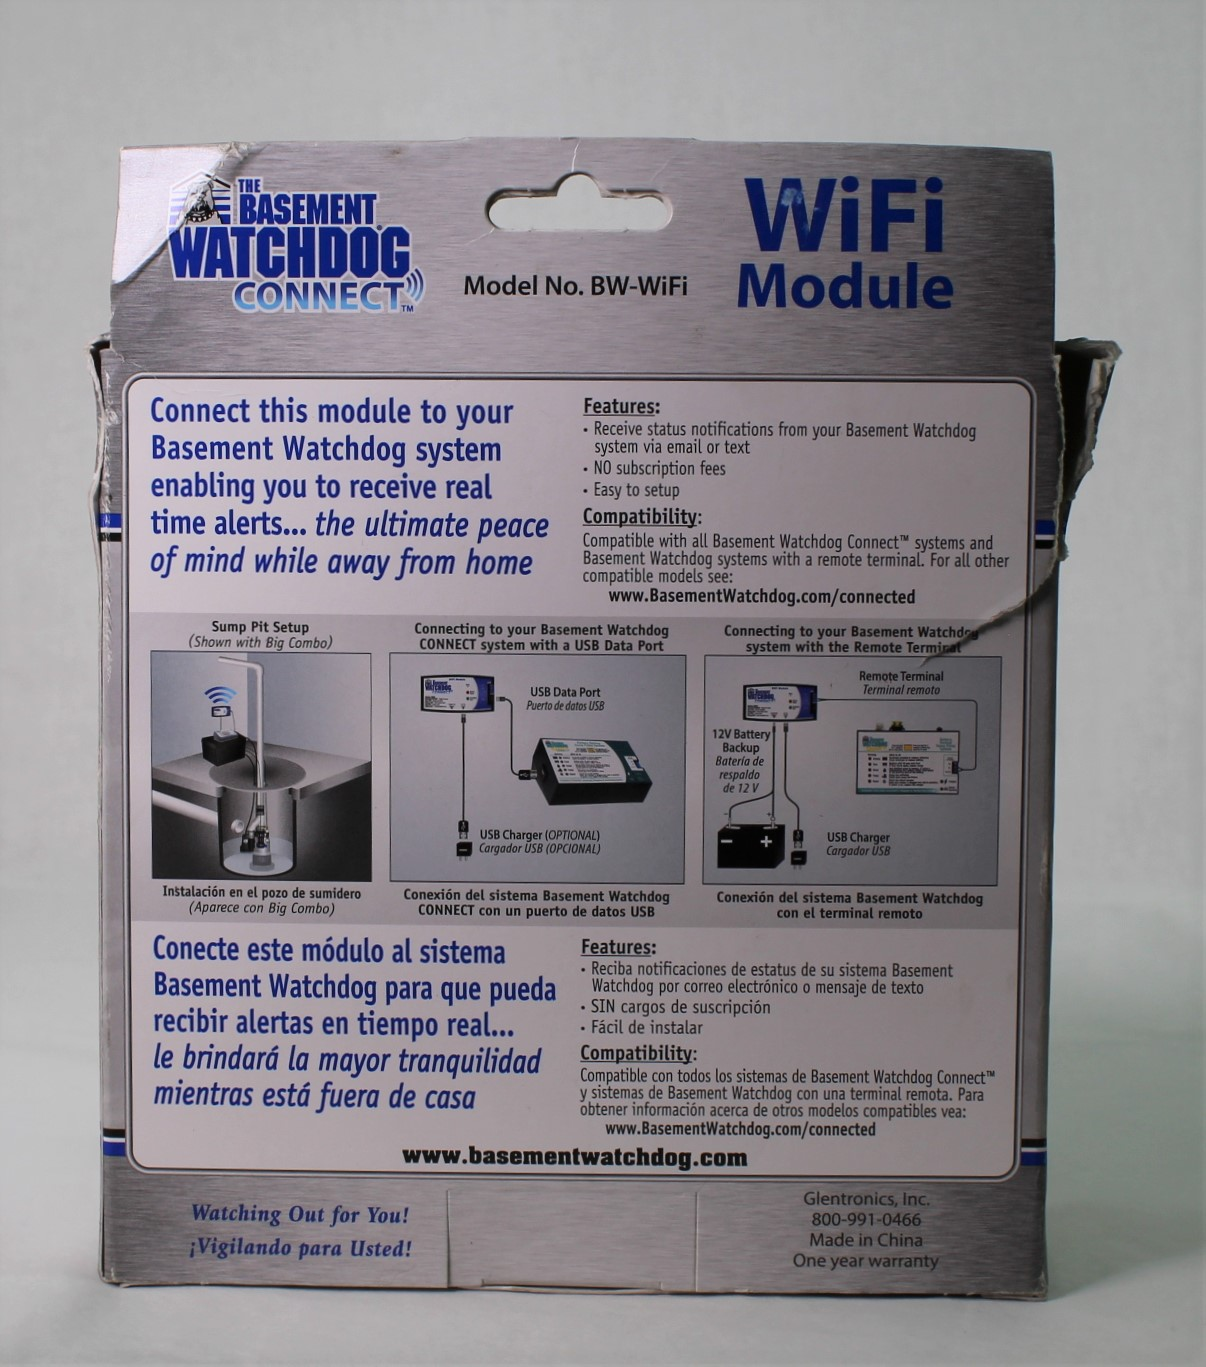 Details about The Basement Watchdog Connect WiFi Module Model No  BW-WiFi  Remote Monitoring